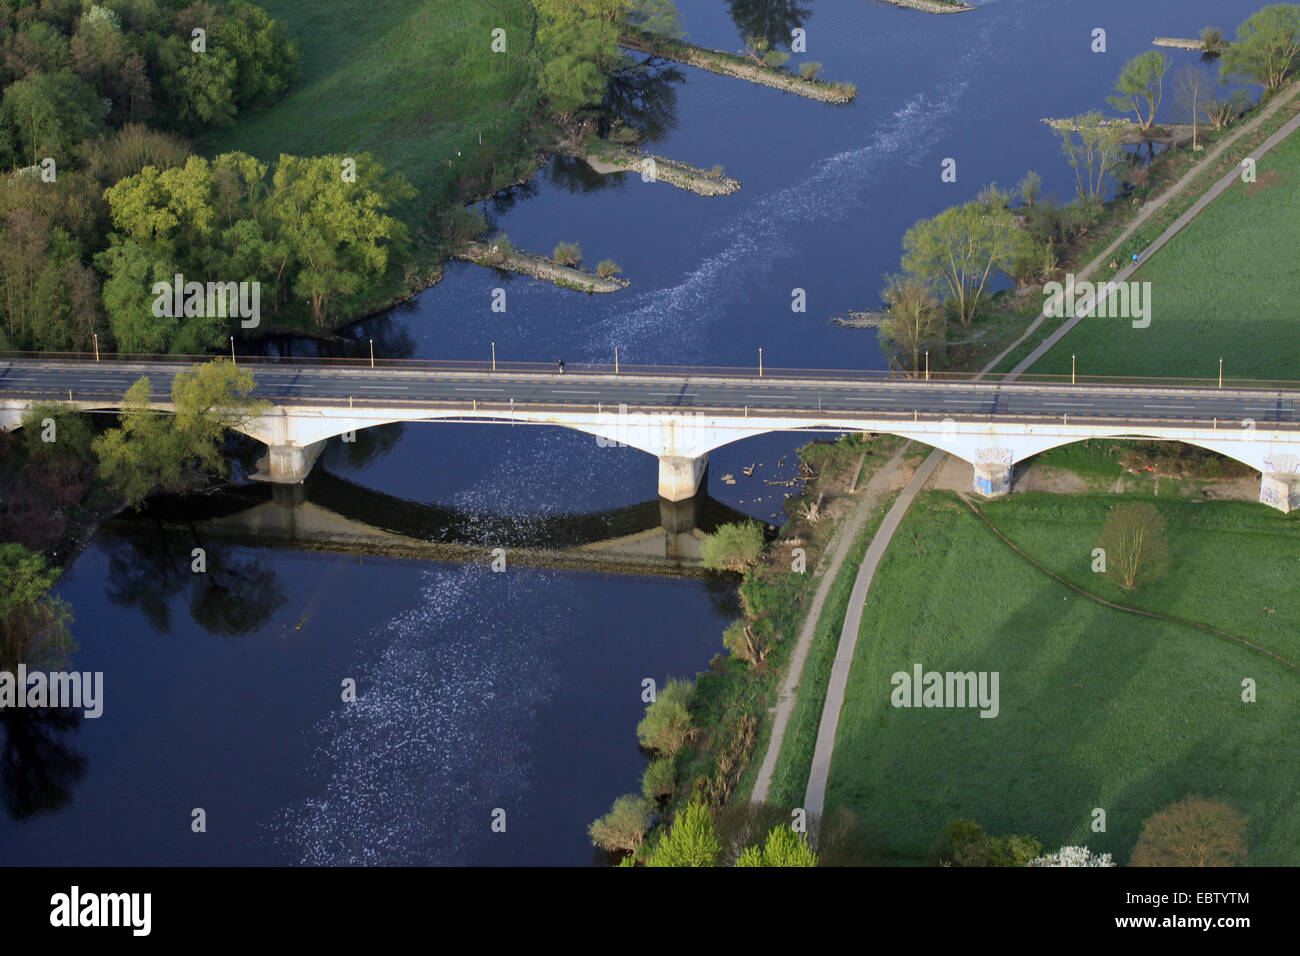 Kemnader Bruecke, Bridge over Ruhr river between Witten and Bochum, Germany, North Rhine-Westphalia, Ruhr Area, - Stock Image